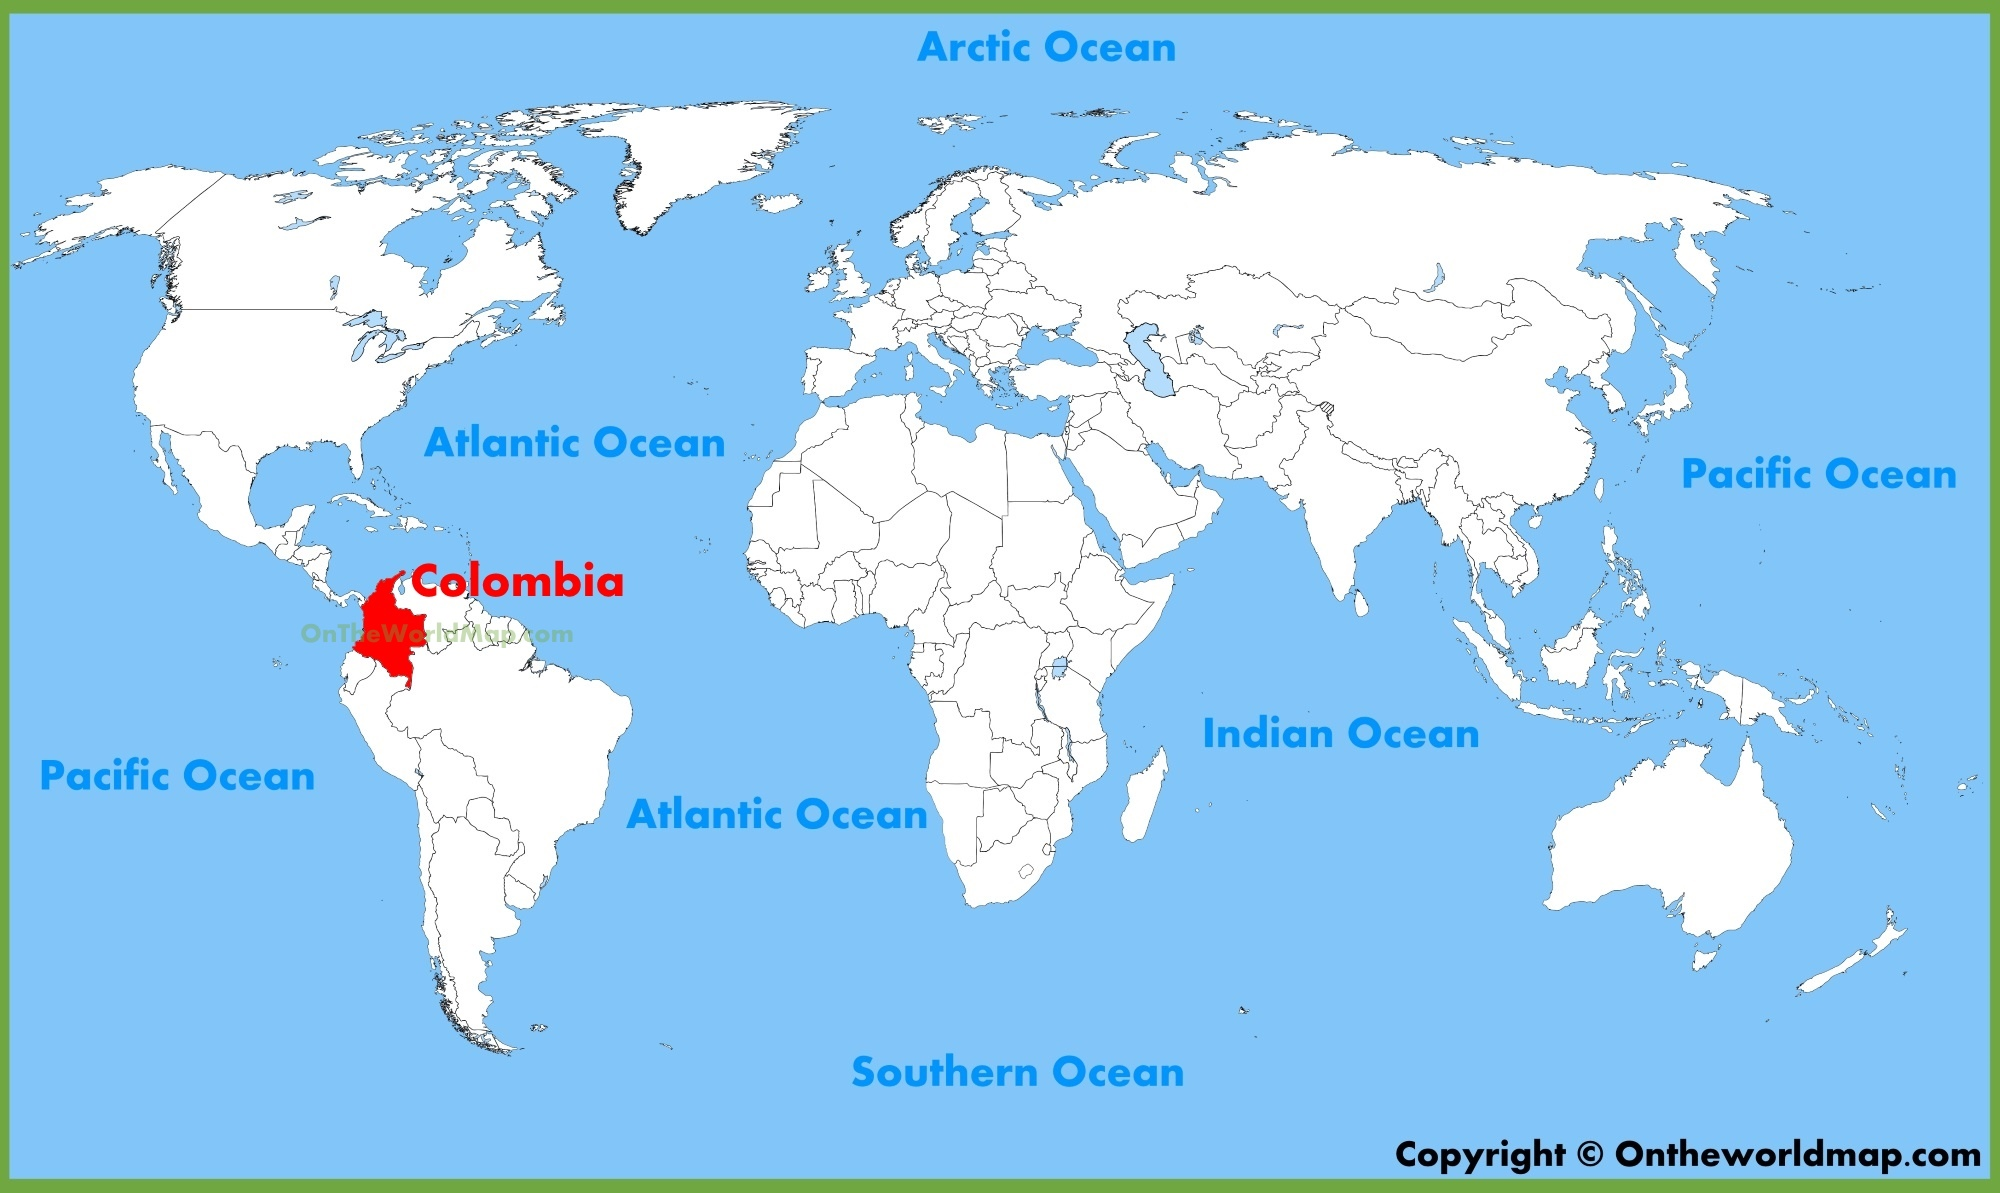 Columbia On World Map Colombia location on the World Map